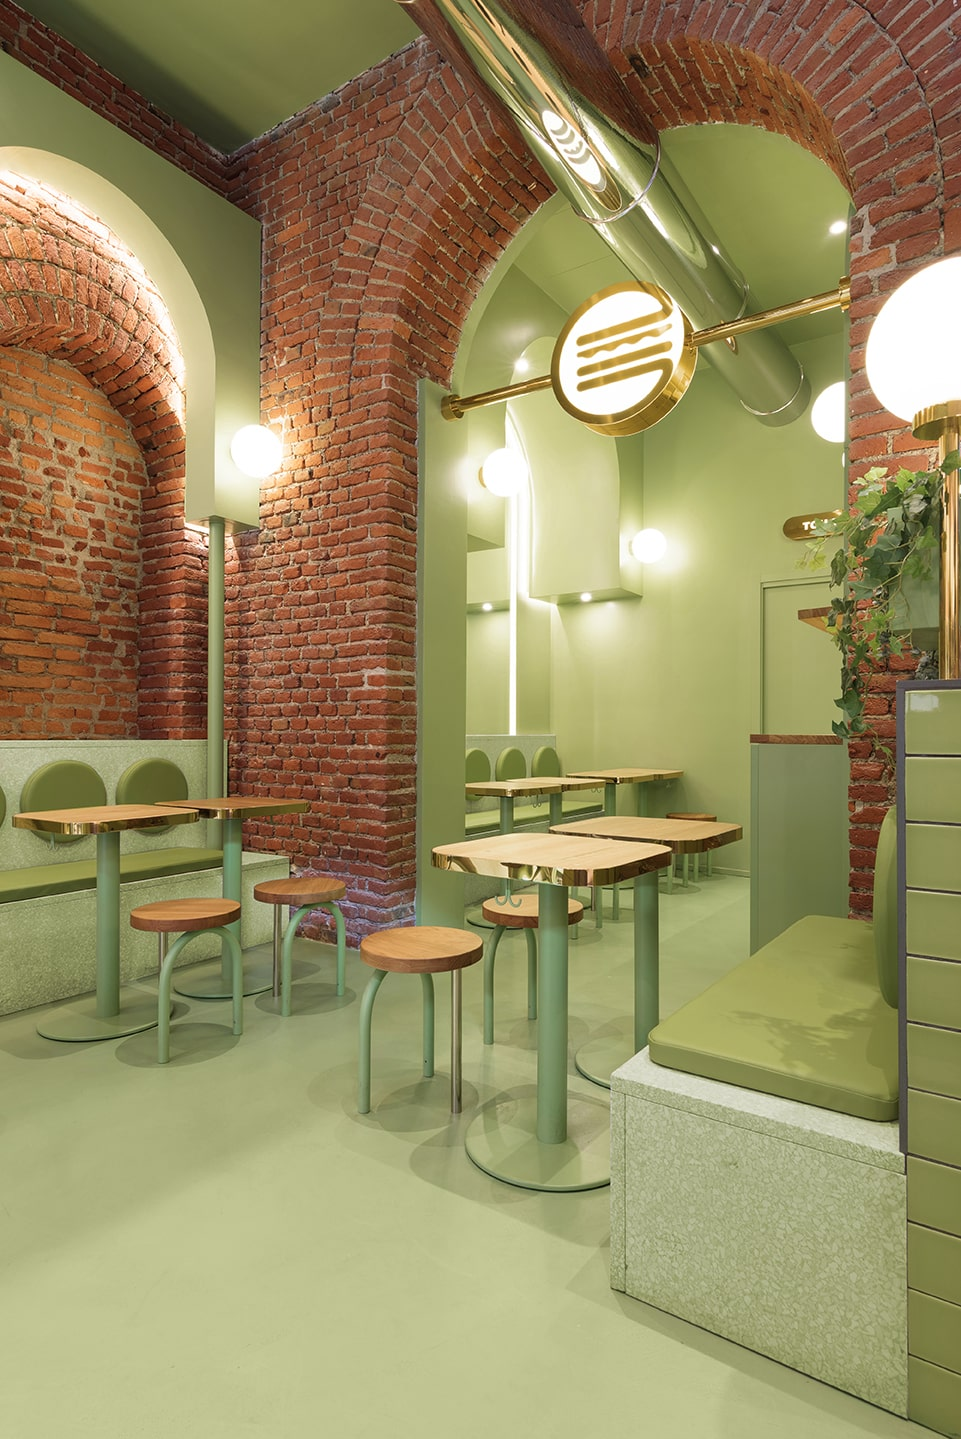 This is a close look at the green edge of the restaurant with its tall archway, red brick wals and contrasting green tone on its floor, wall and ceiling that has exposed vents.